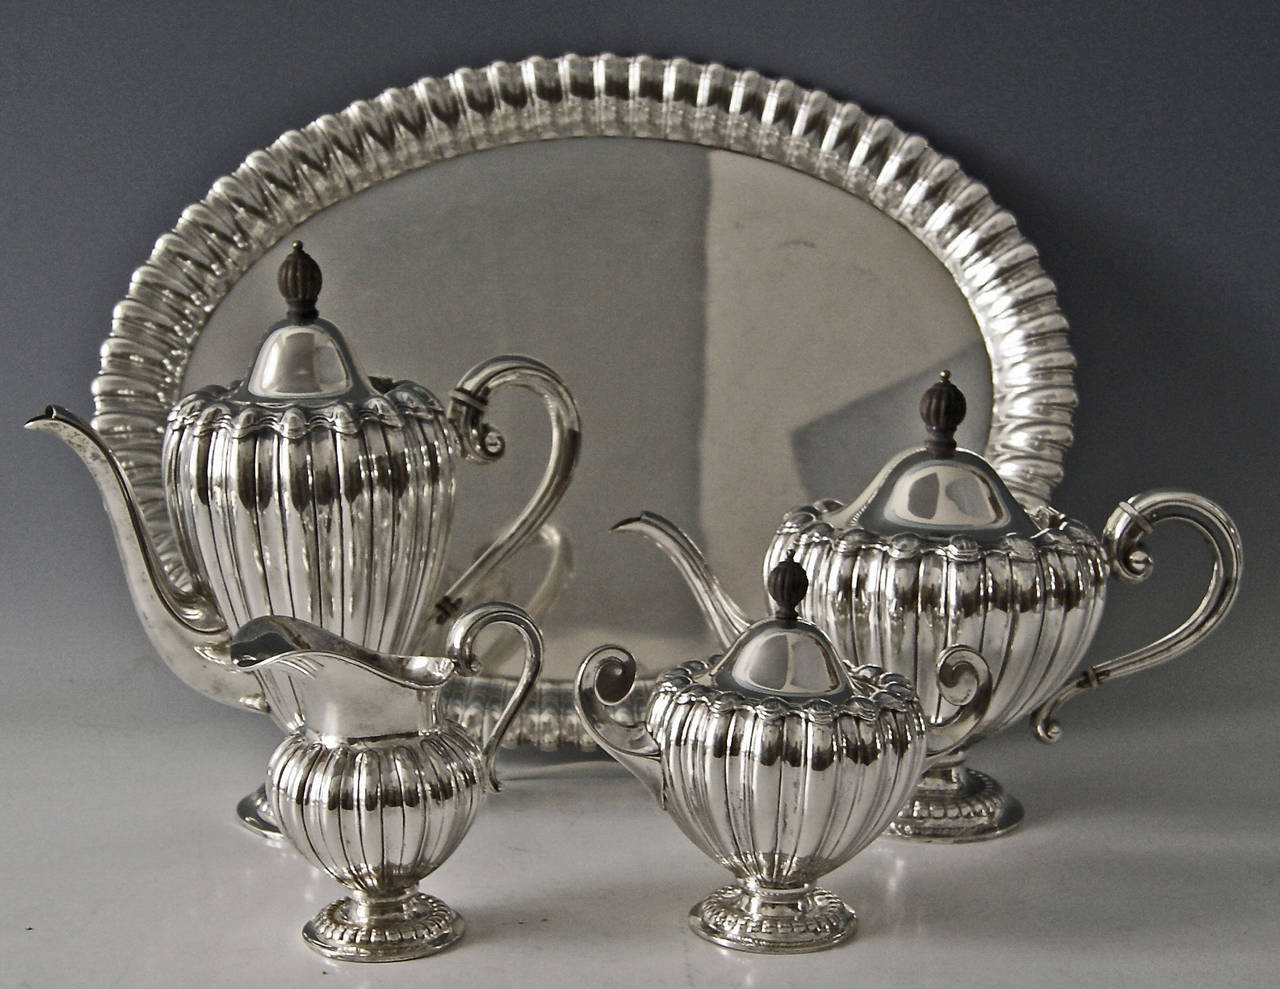 Silver Art Deco Coffee Tea Set Made by Wilkens, Germany, circa 1918 For Sale 1